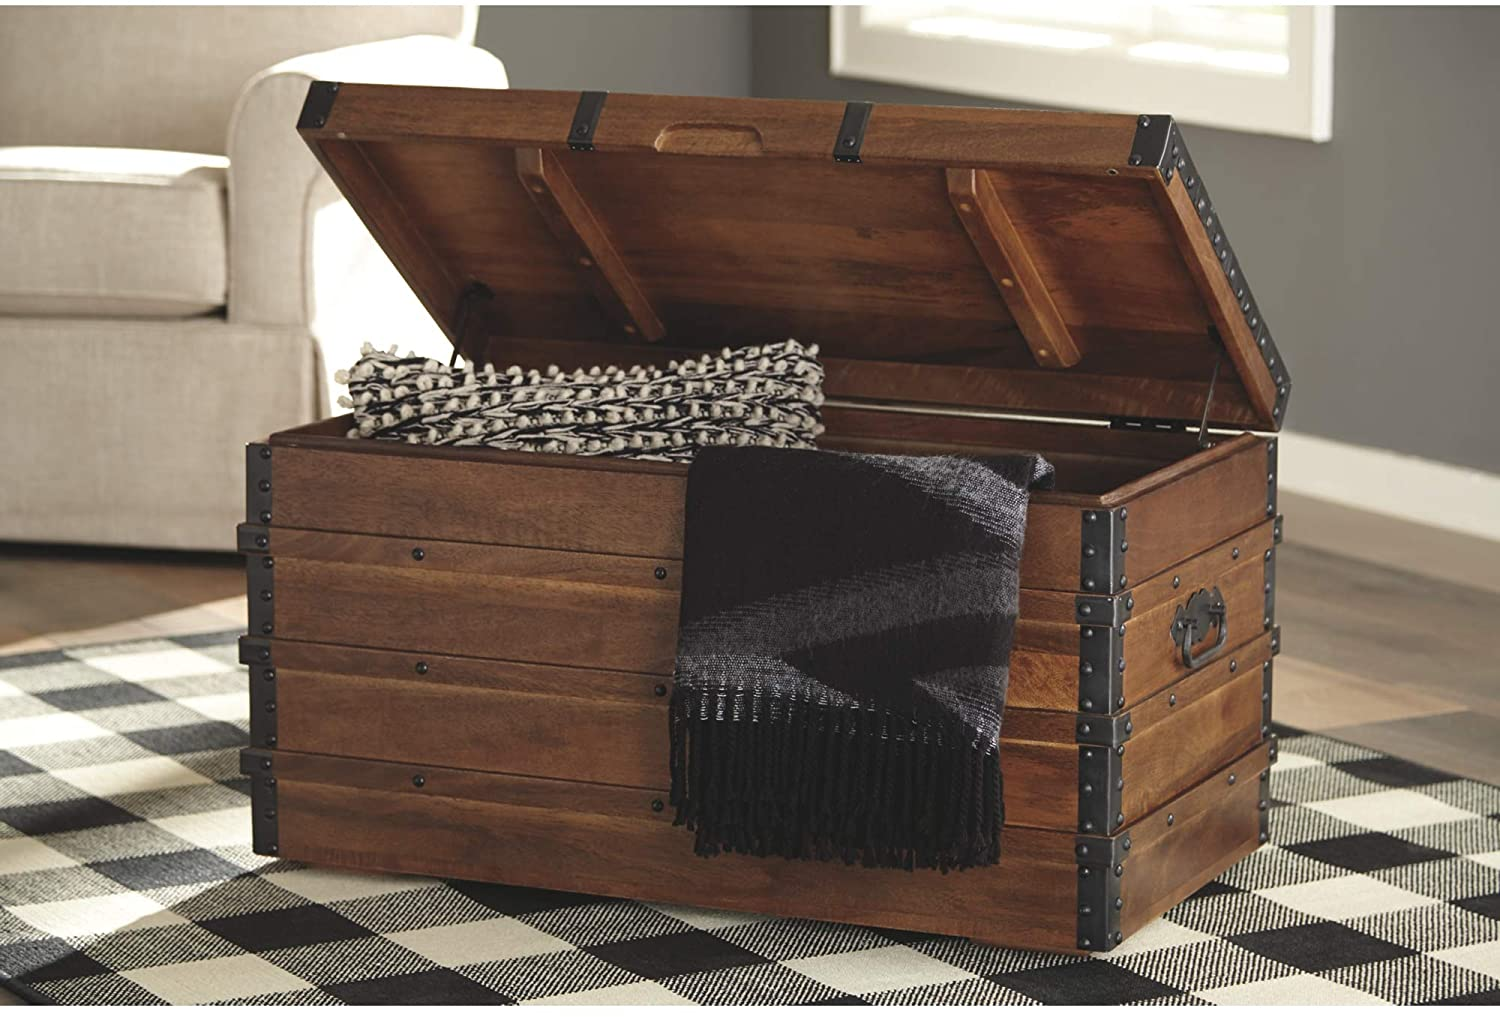 Signature Design by Ashley - Kettleby Storage Trunk - Rustic - Brown 3